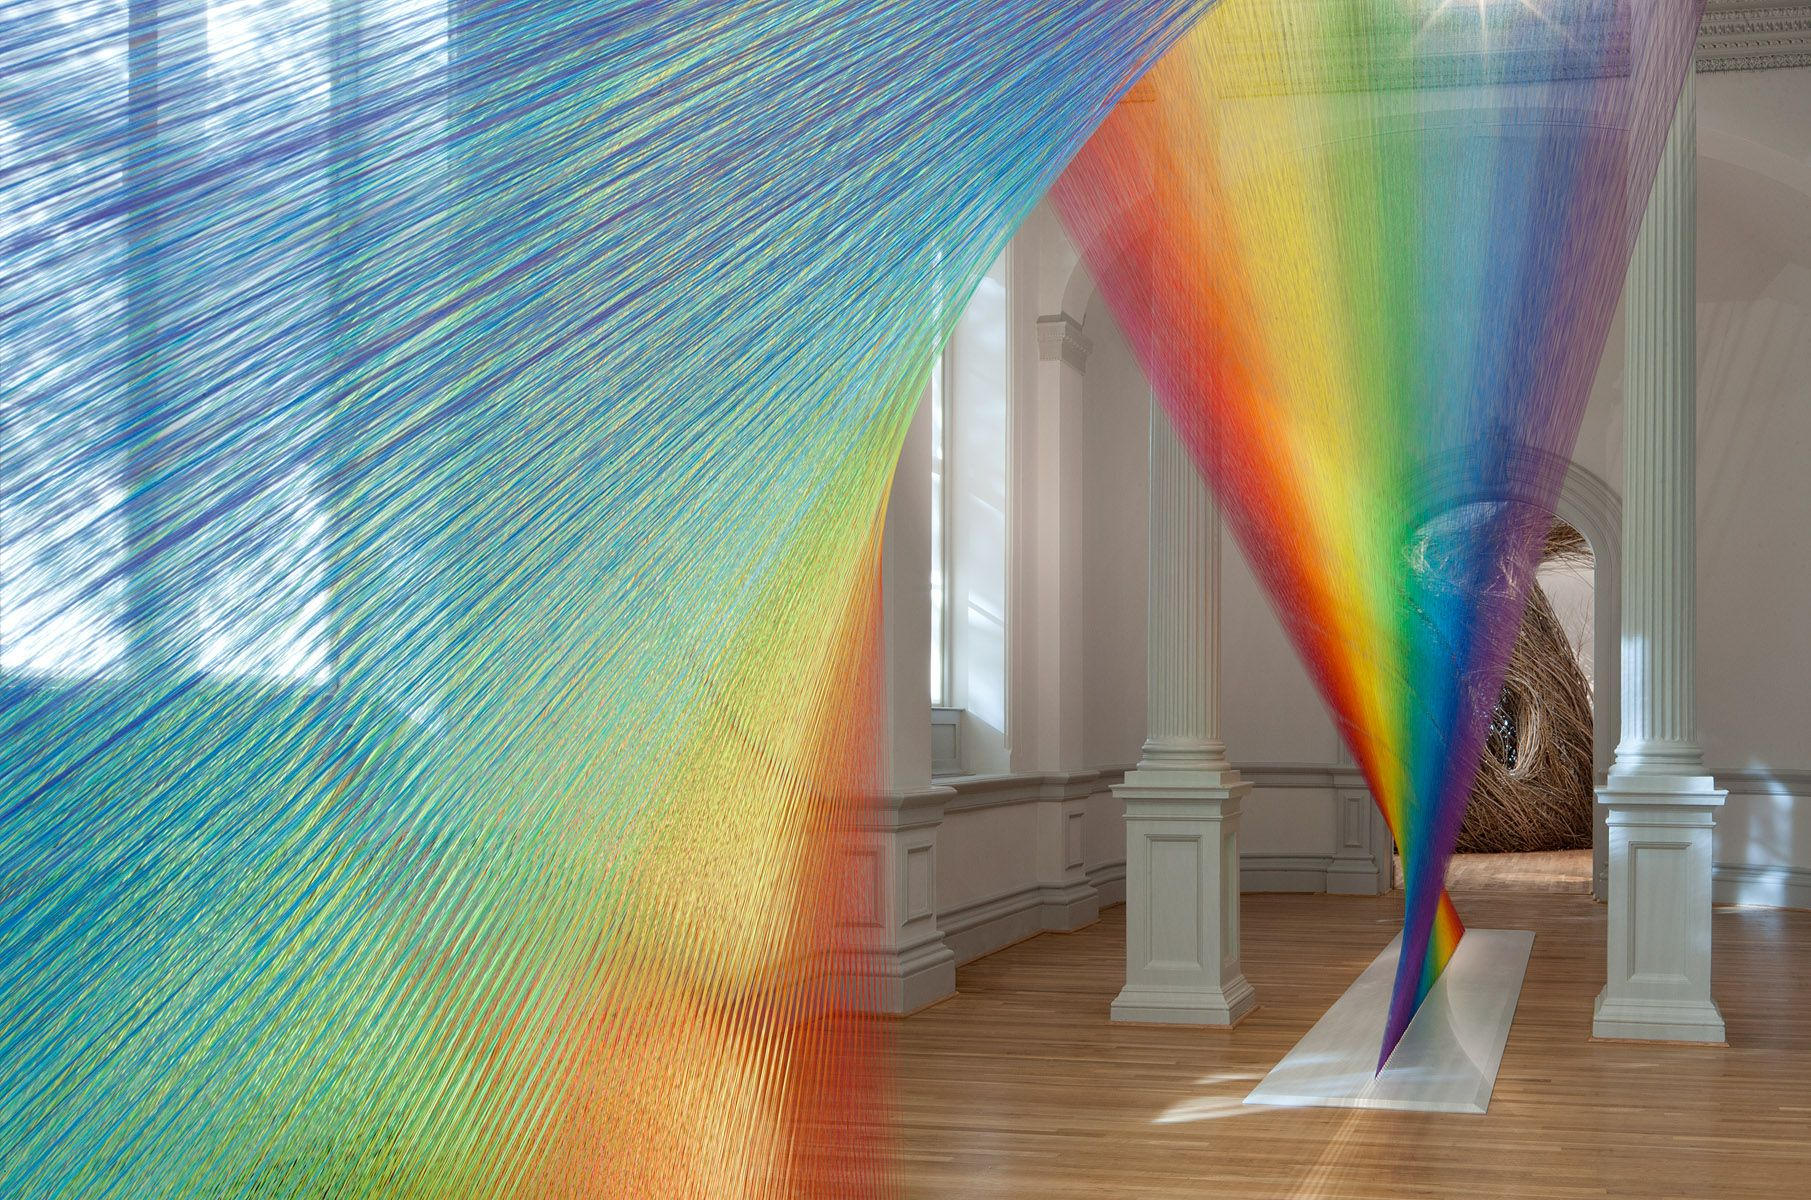 Miles of Thread and a Giant Needle Weave Indoor Rainbows | Gabriel ... for Light Installation Art Indoor  35fsj